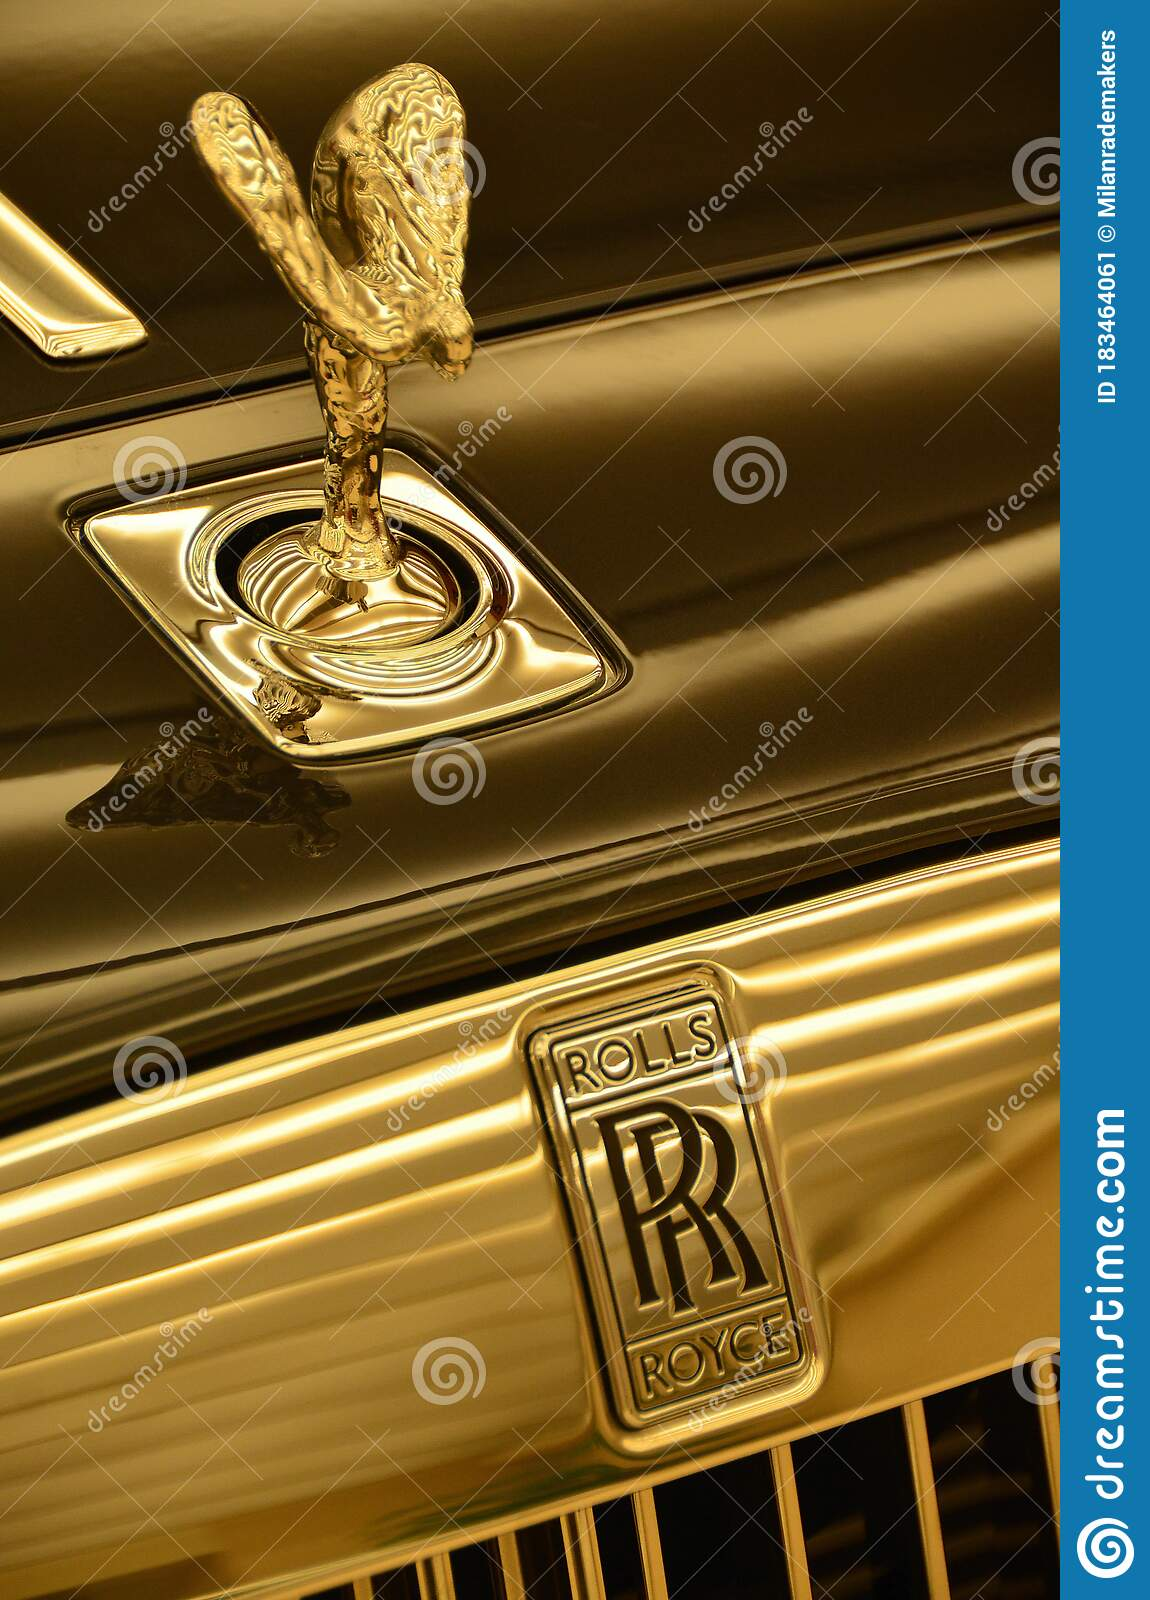 Close Up Of The Spirit Of Ecstasy And Rolls Royce Logo On The Shining Grill On The Front Of A Rr Phantom Car Hong Kong China Editorial Photo Image Of